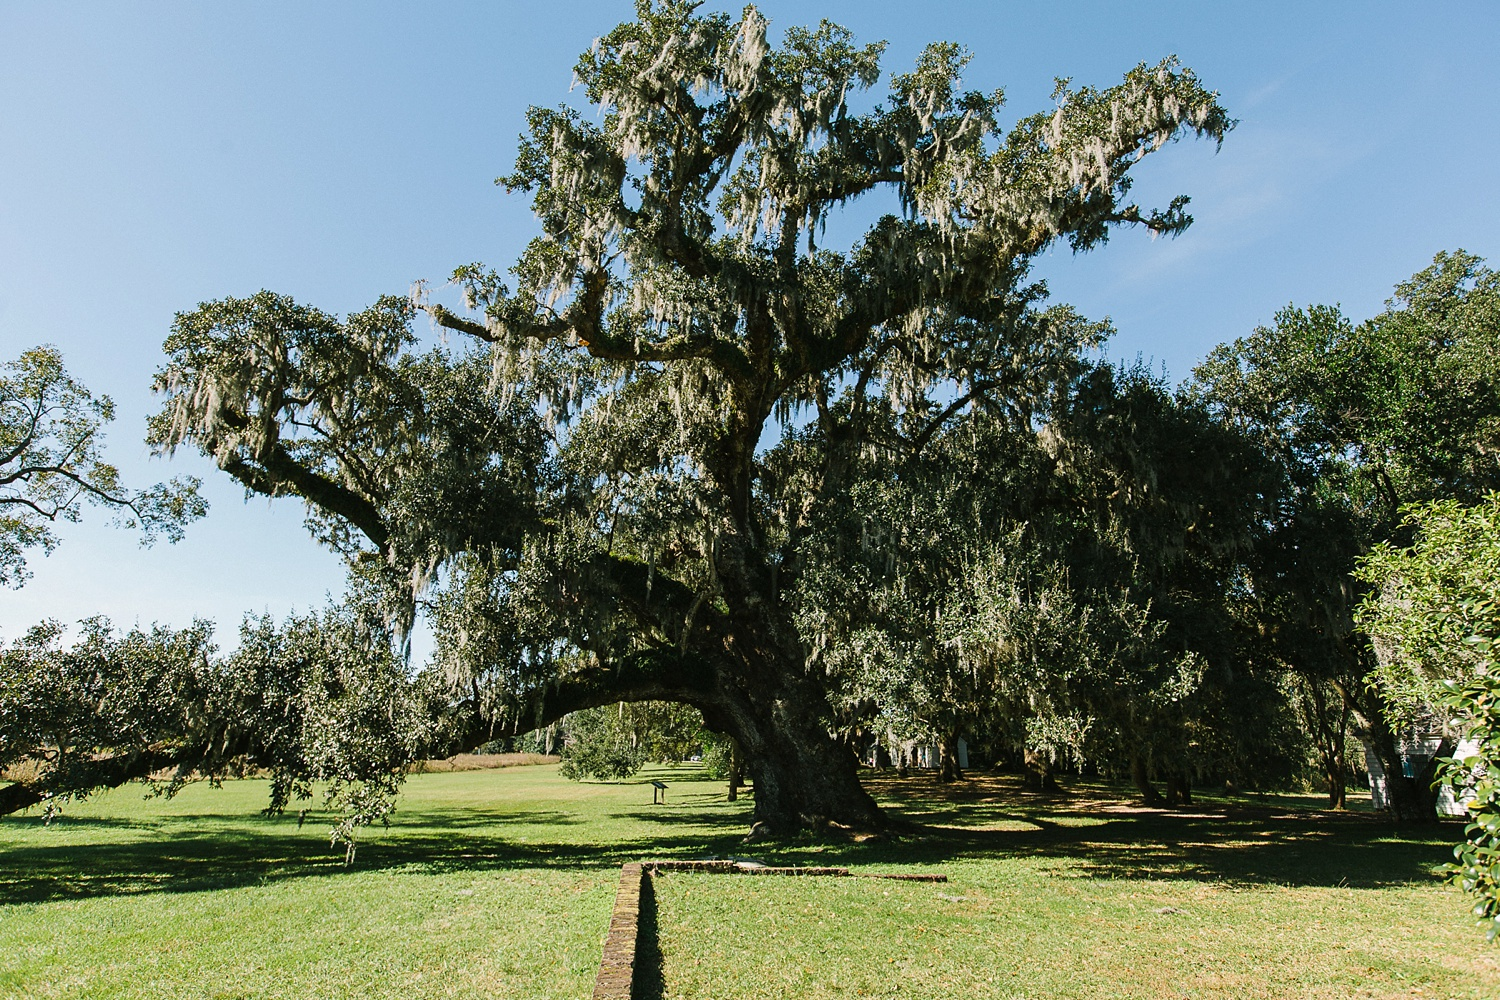 Lindsey_A_Miller_photography_charleston_mcleod_plantation_wedding_row_of_oaks_southern_classic_fall_spanish_moss_historic_home_001.jpg